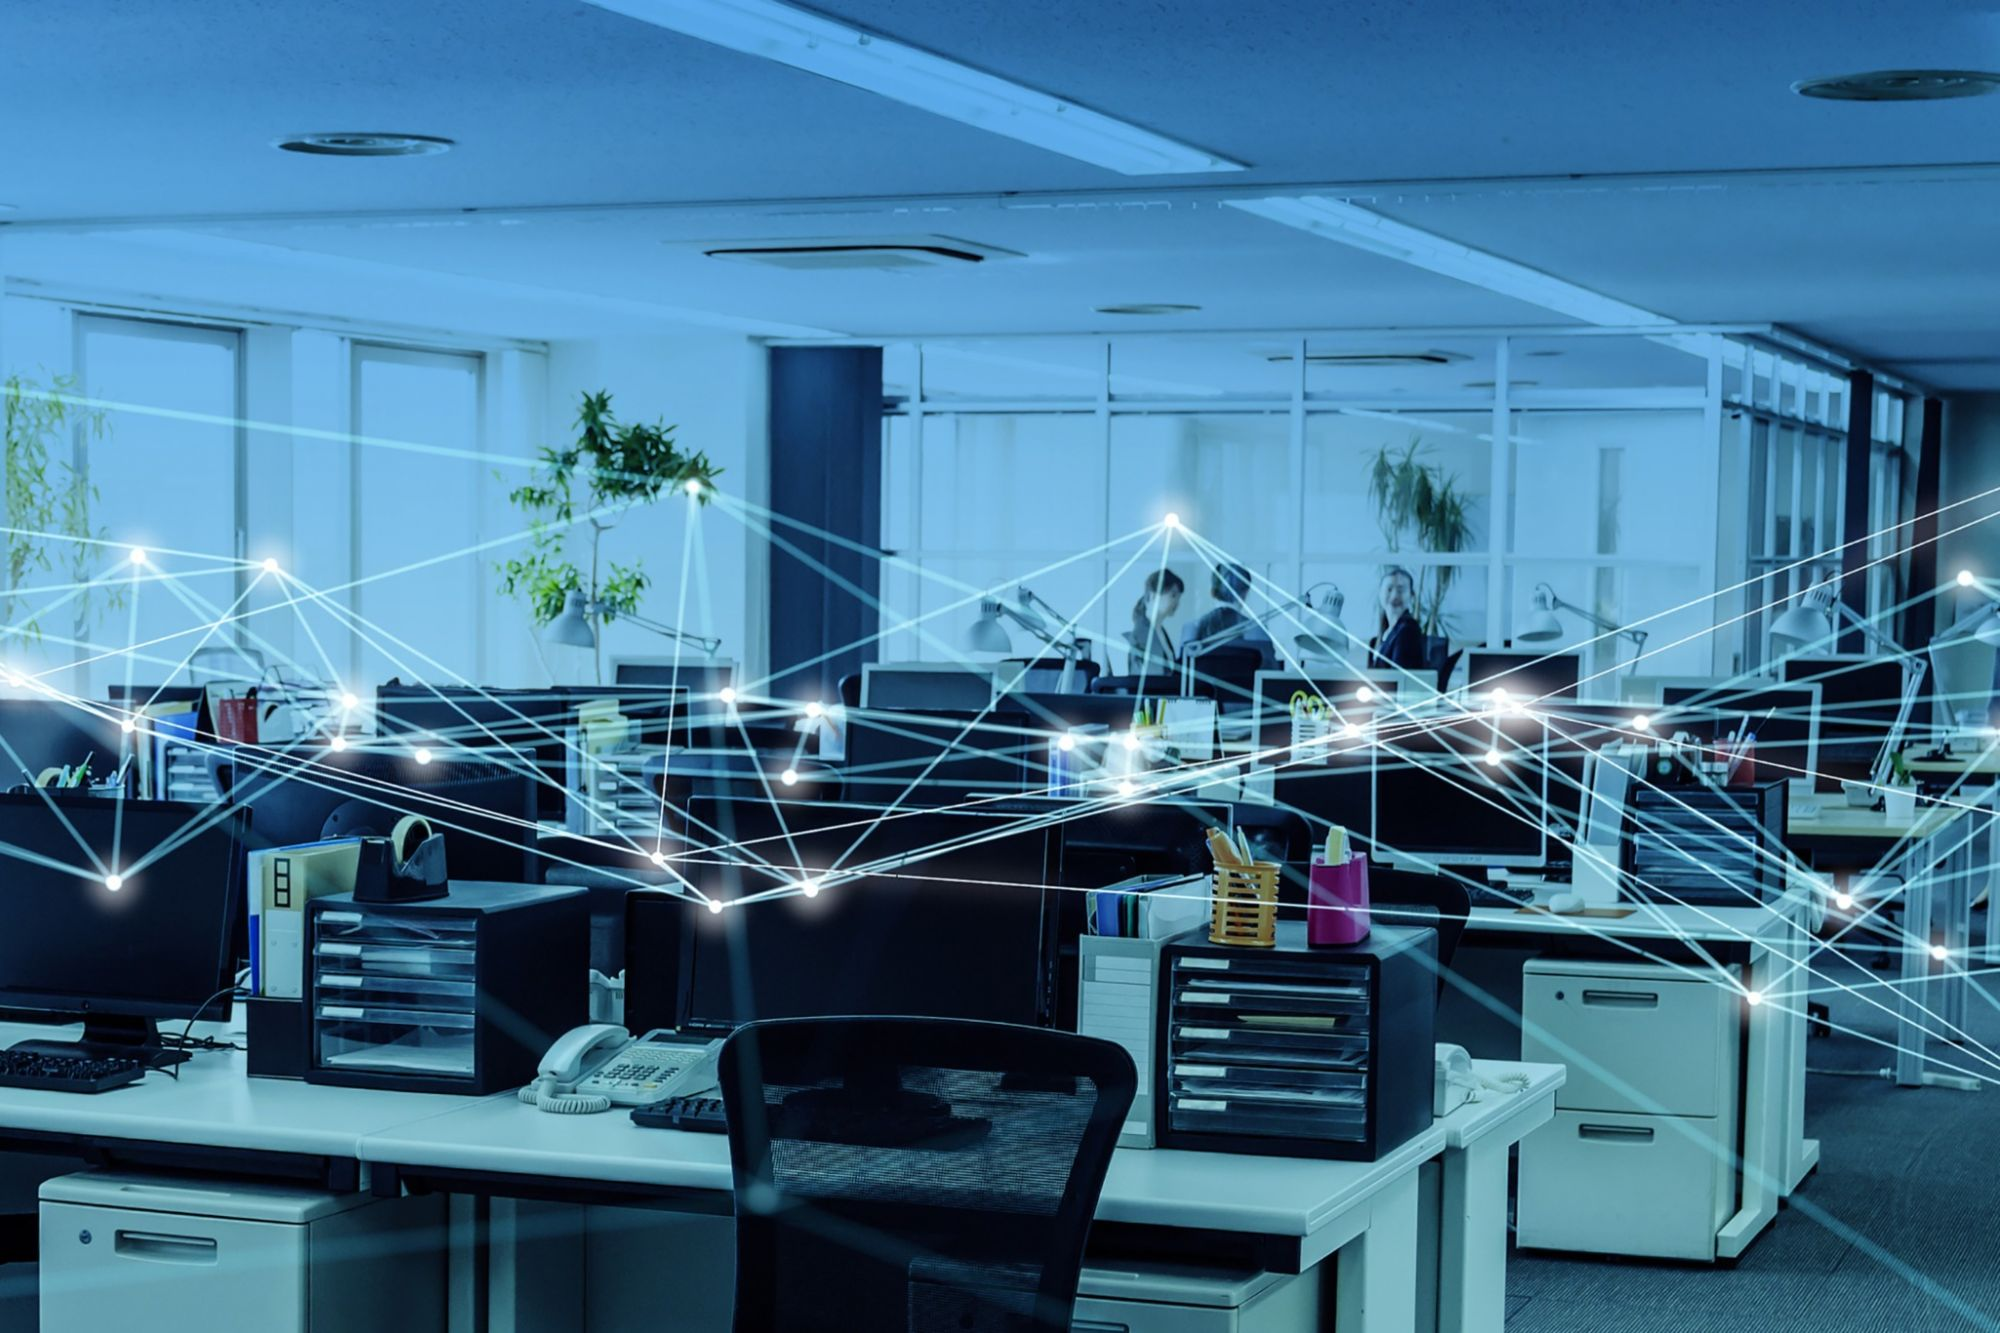 Renting a new office building? Check its network infrastructure first